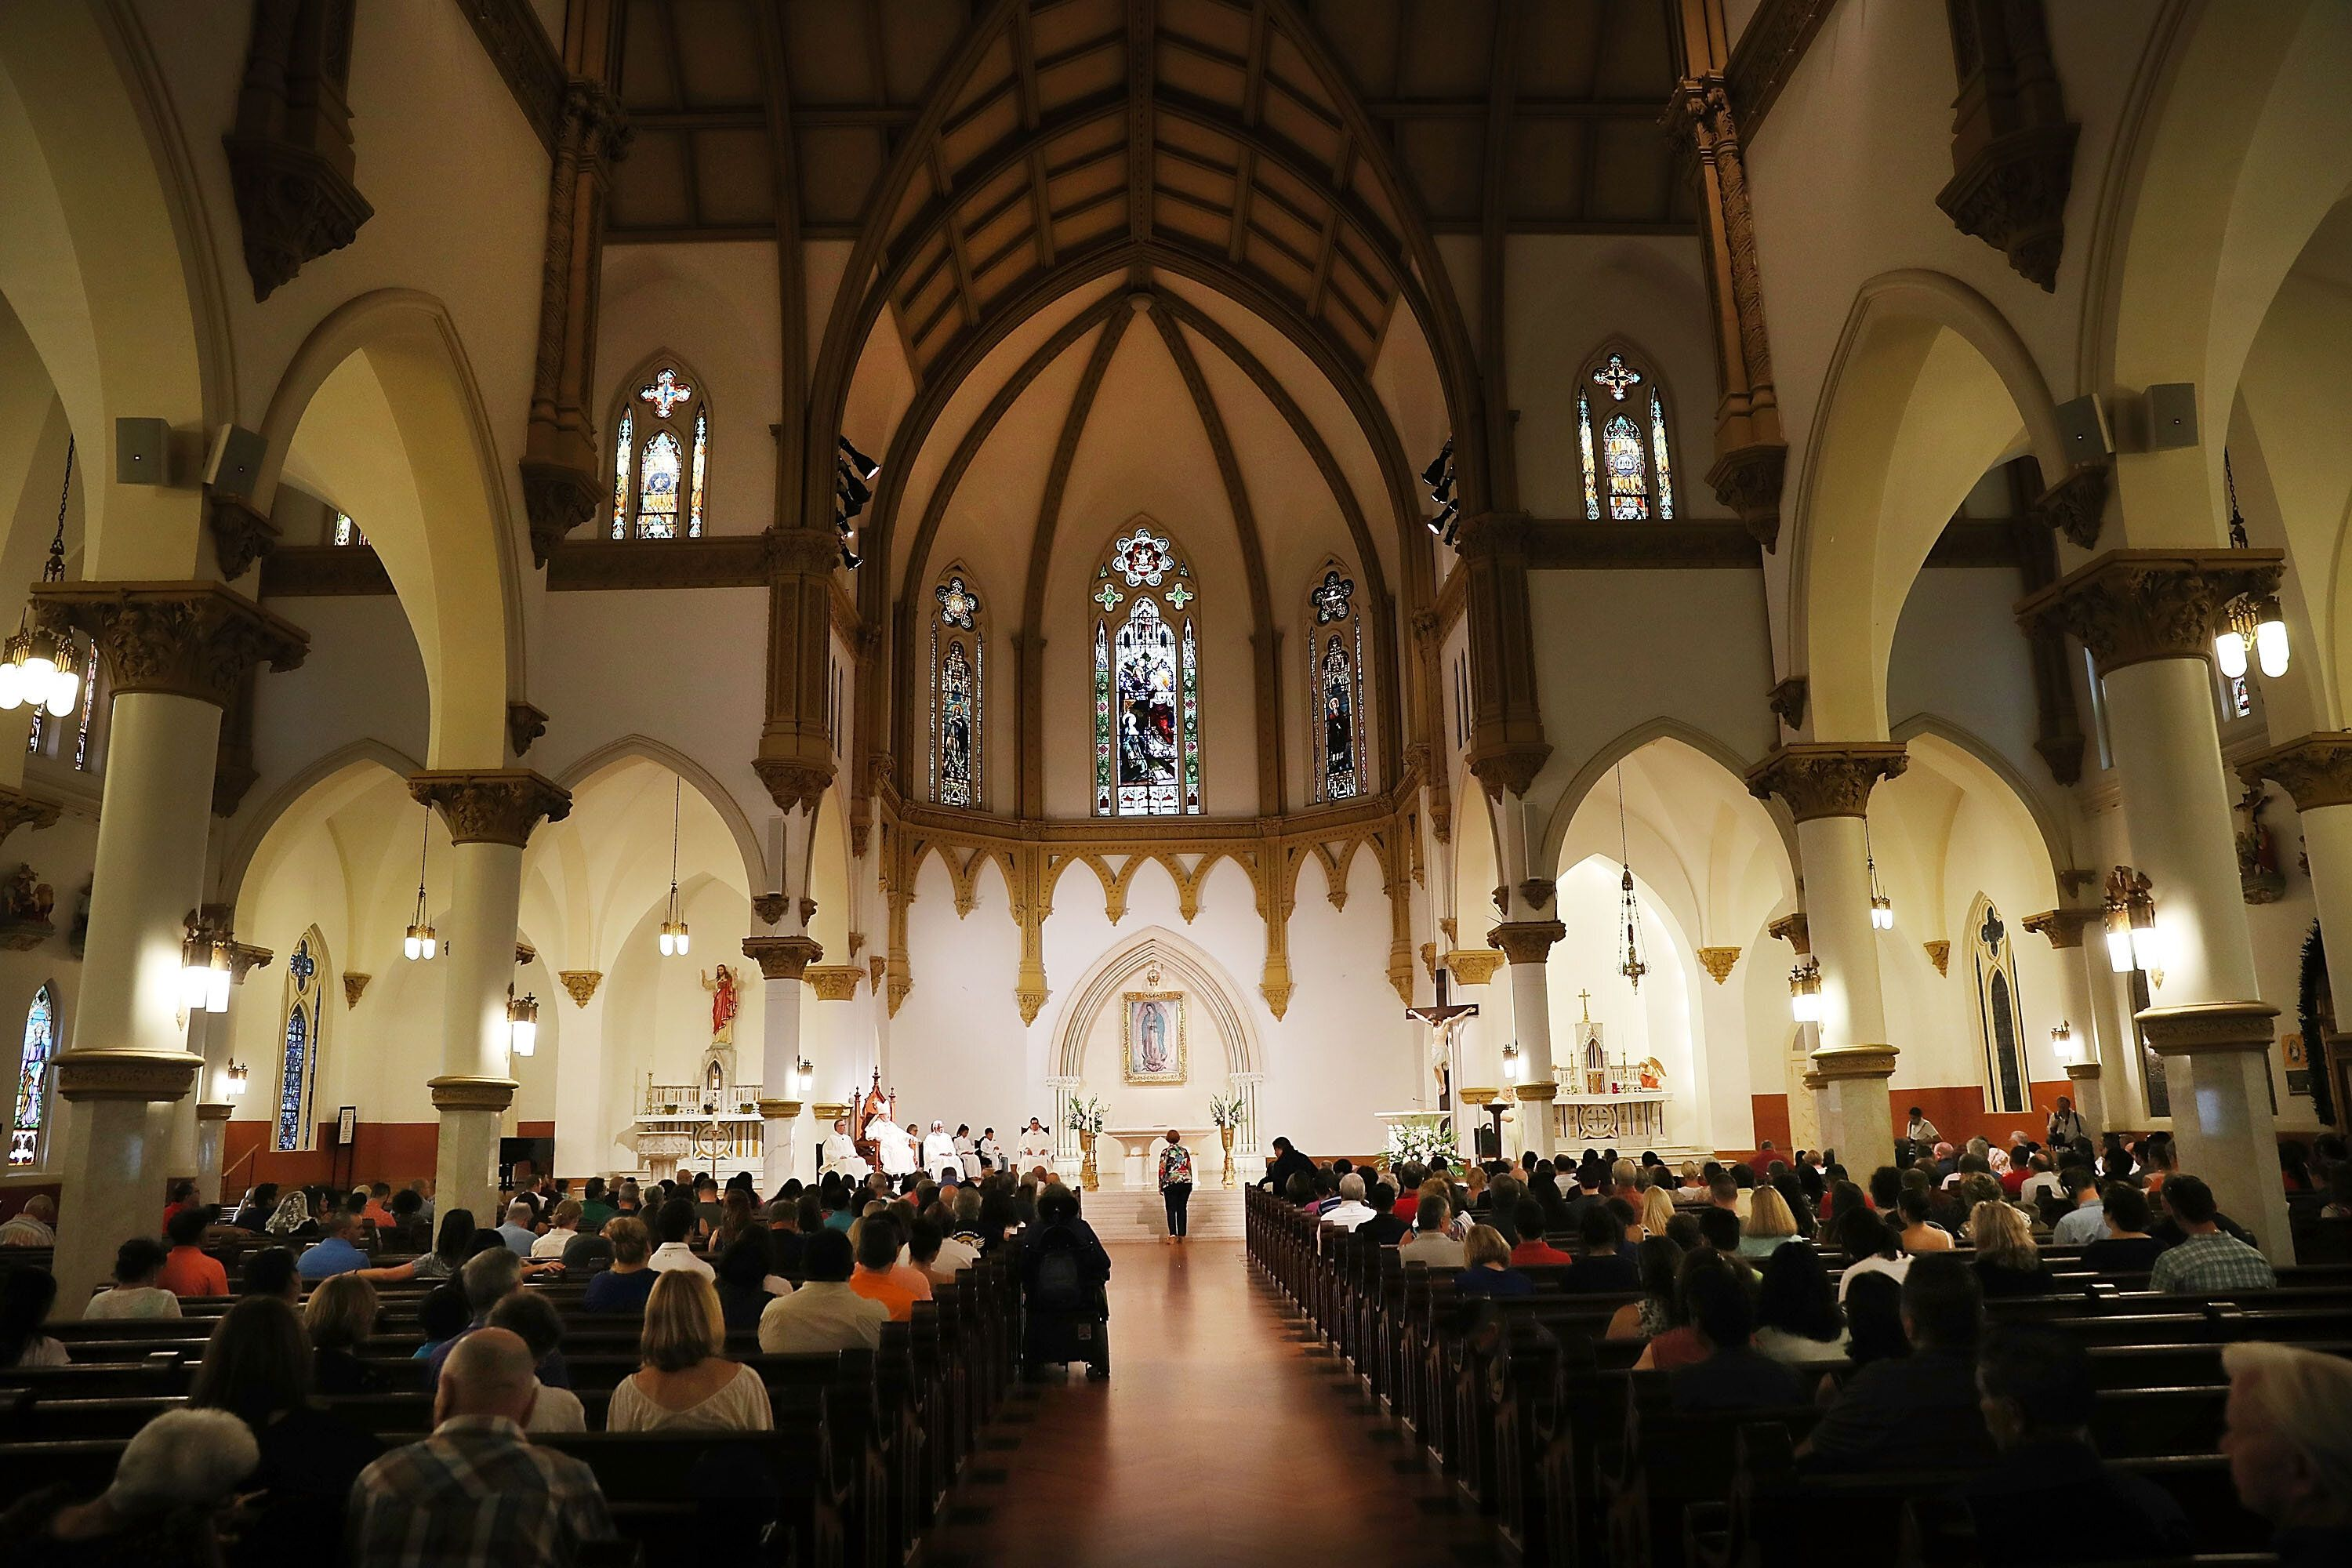 People attend a Mass at the Cathedral Shrine of the Virgin of Guadalupe, the mother church of the Roman Catholic Diocese of D